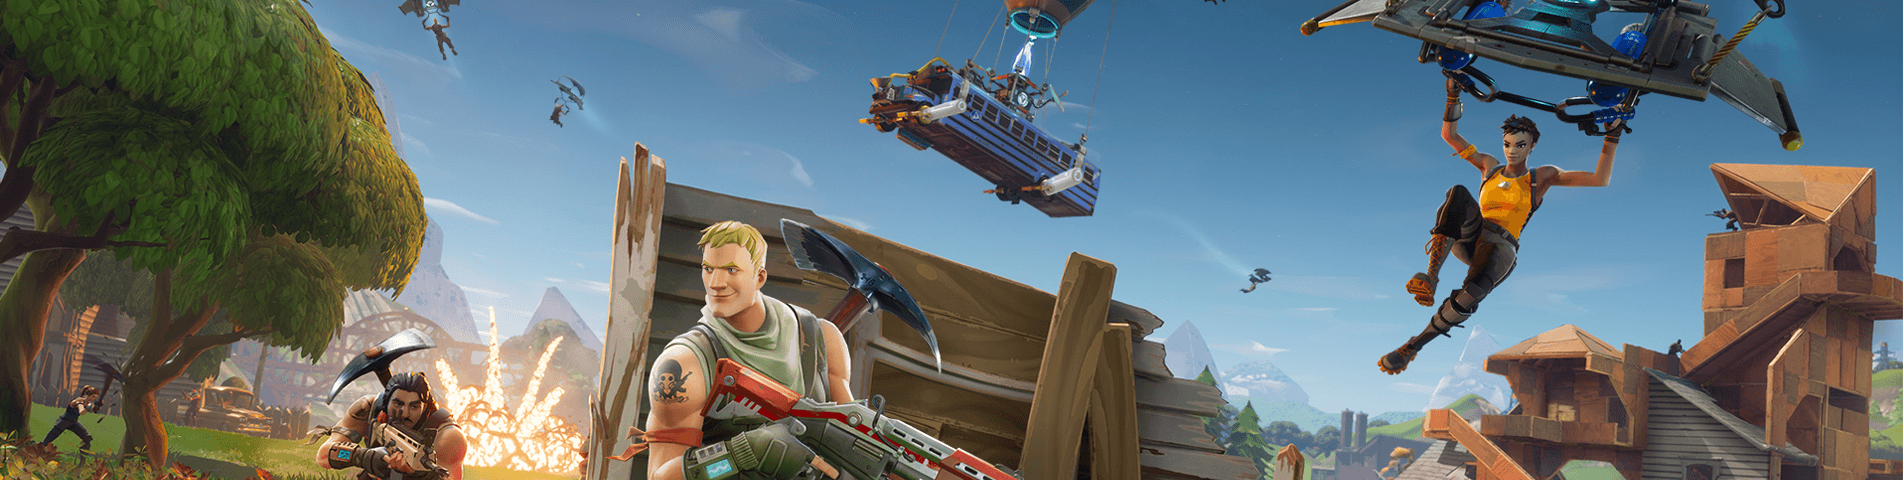 Epic Games Fortnite 1903x480